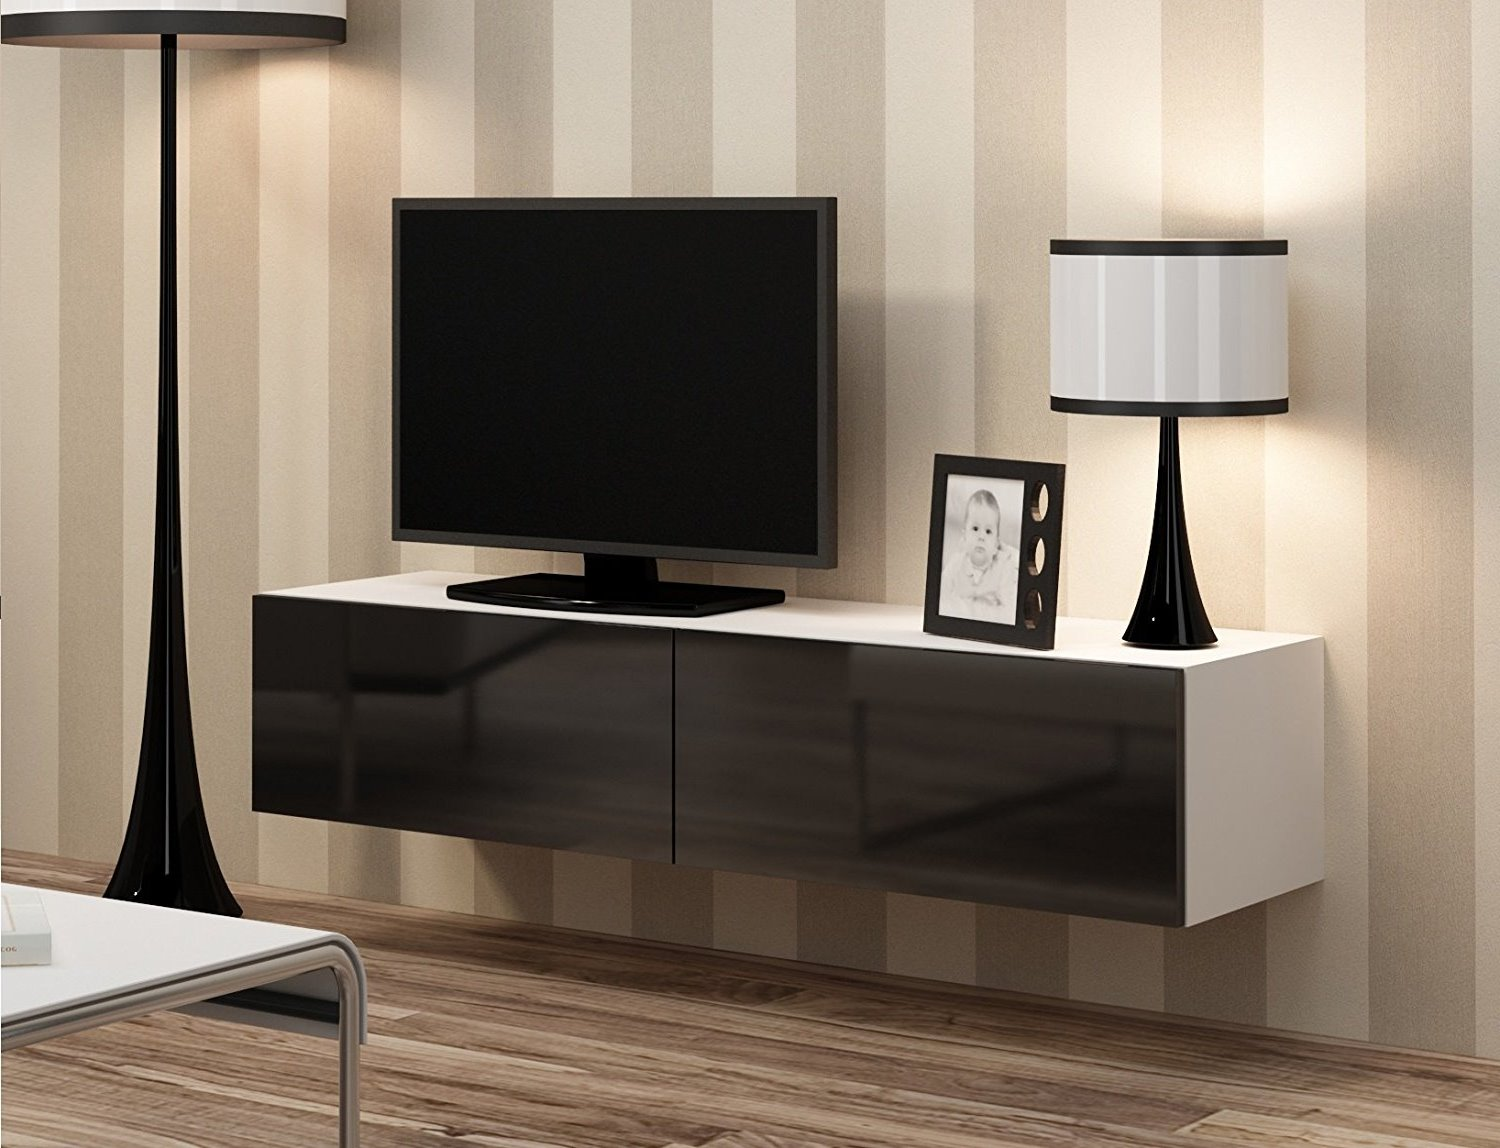 Details About High Gloss White Black Tv Cabinet Wall Mounted Floating Entertainment Unit 140